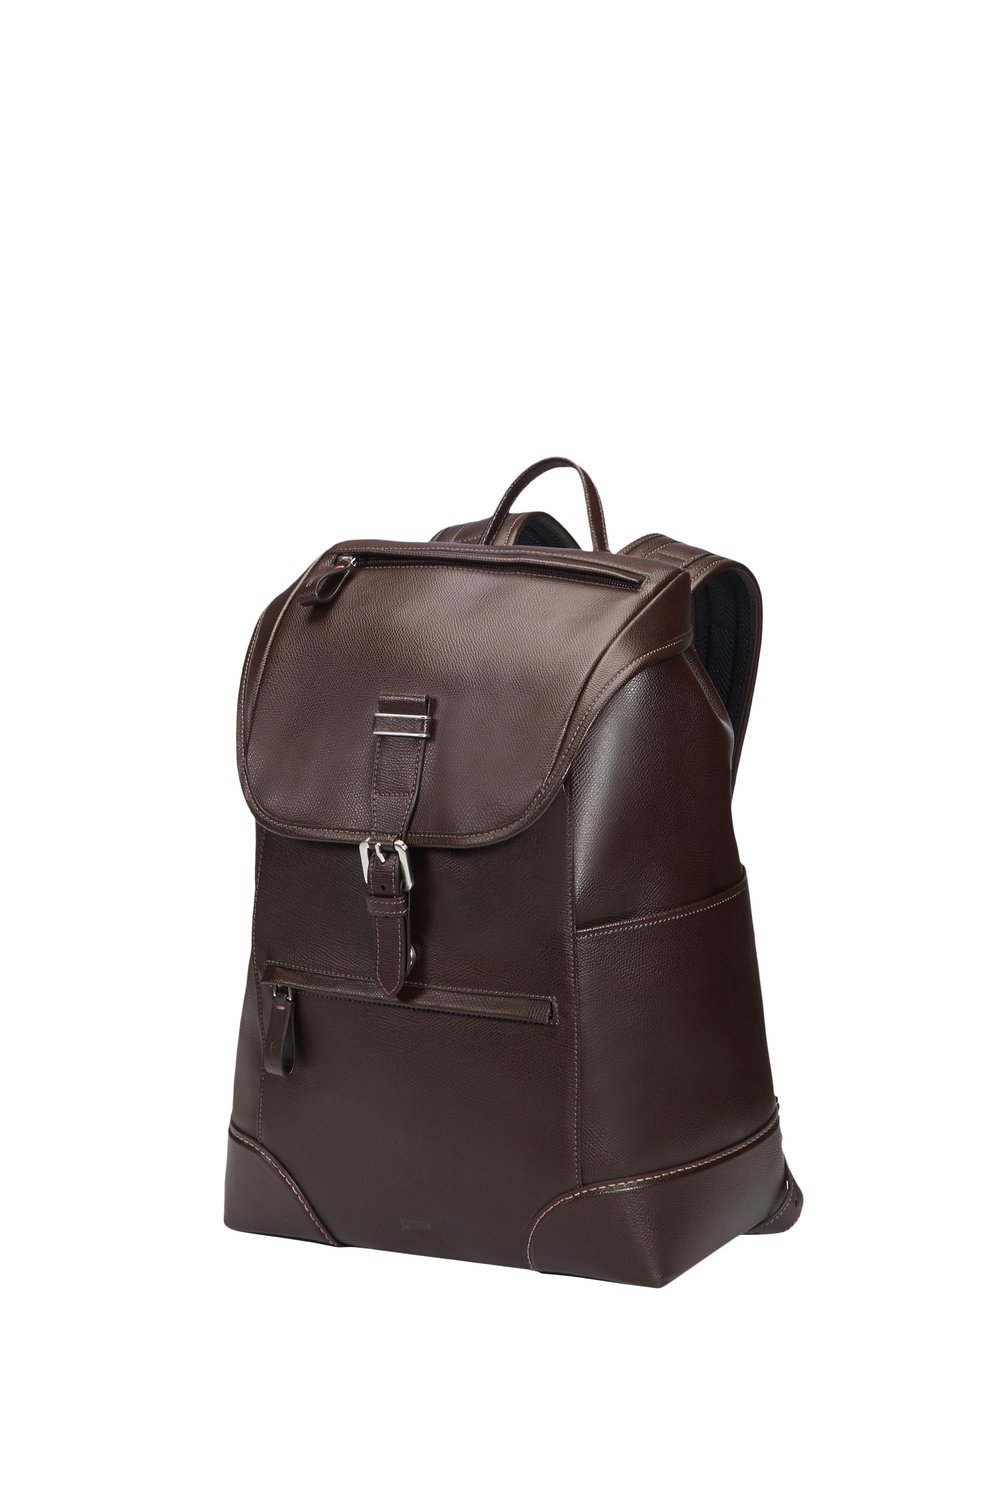 Hartmann HM Jamestown Backpack £620 (Brown).jpg